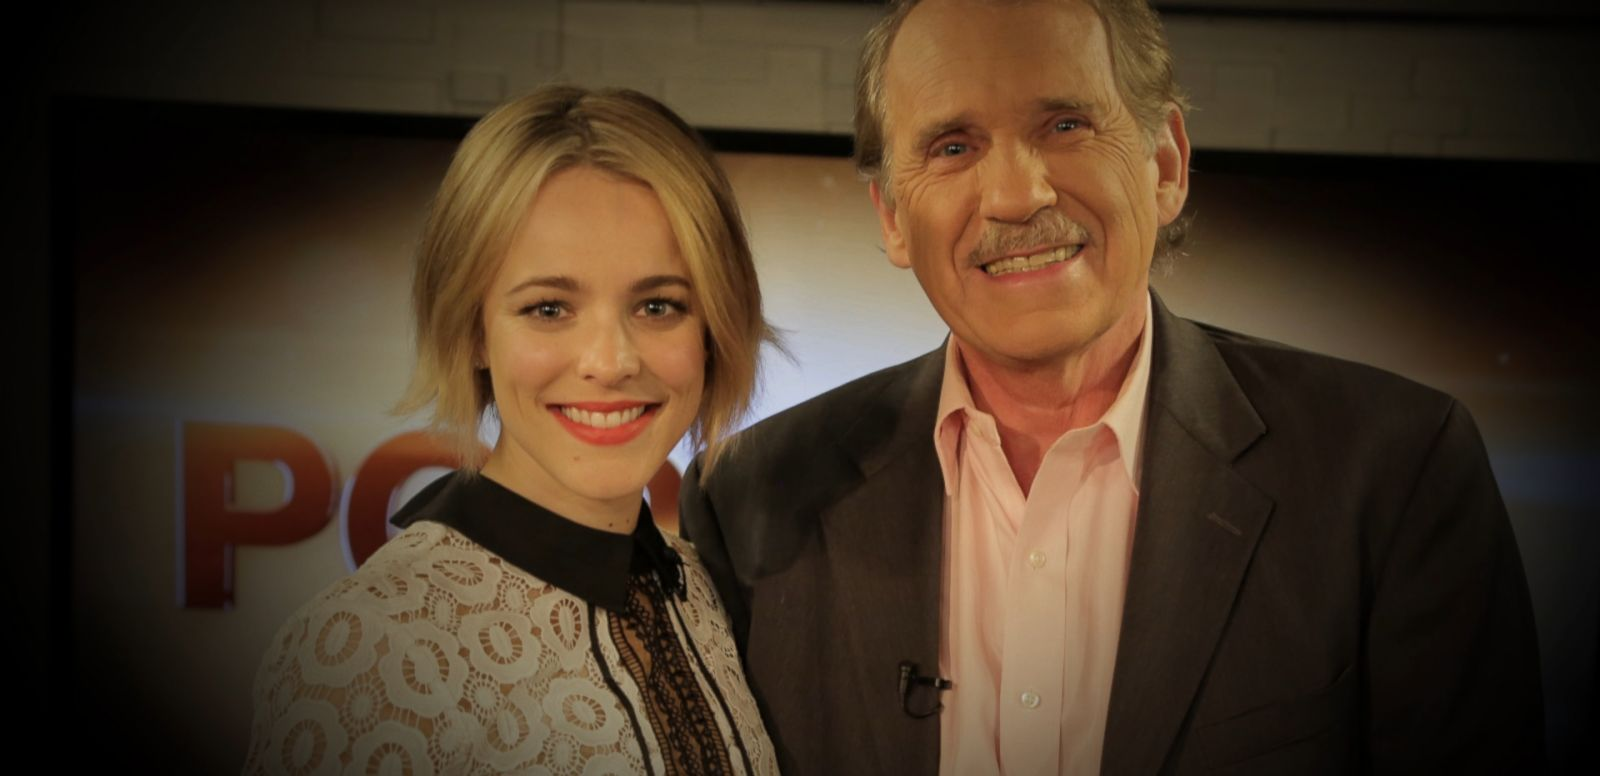 VIDEO: Mean Girl Rachel McAdams Tougher Than Ever in Her New Roles